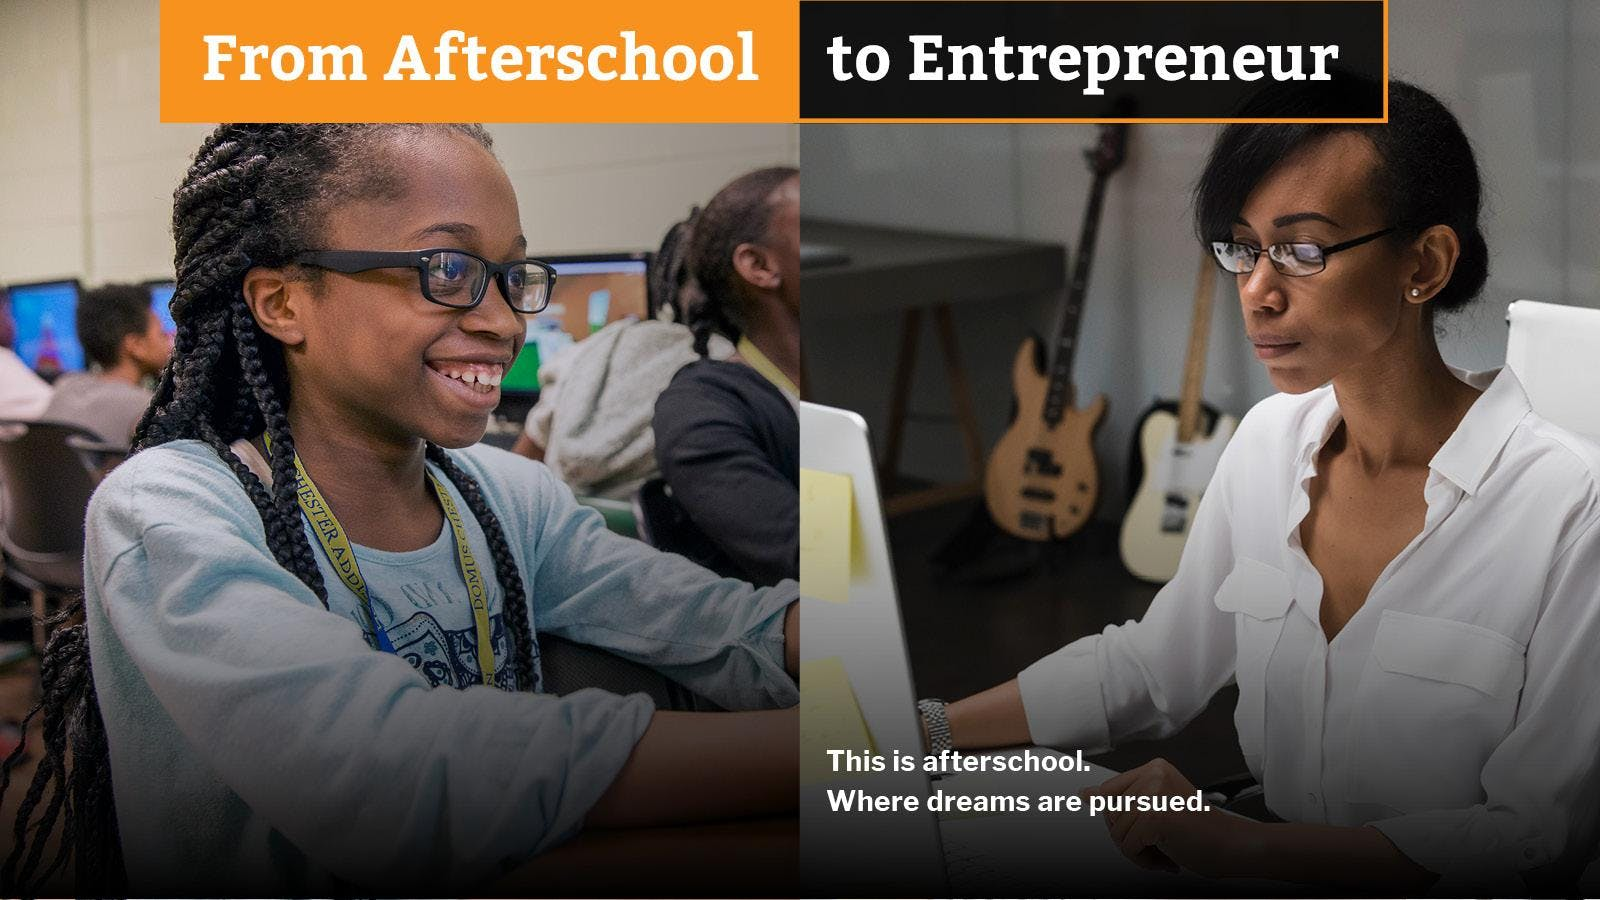 Partnering with Afterschool Programs to Grow